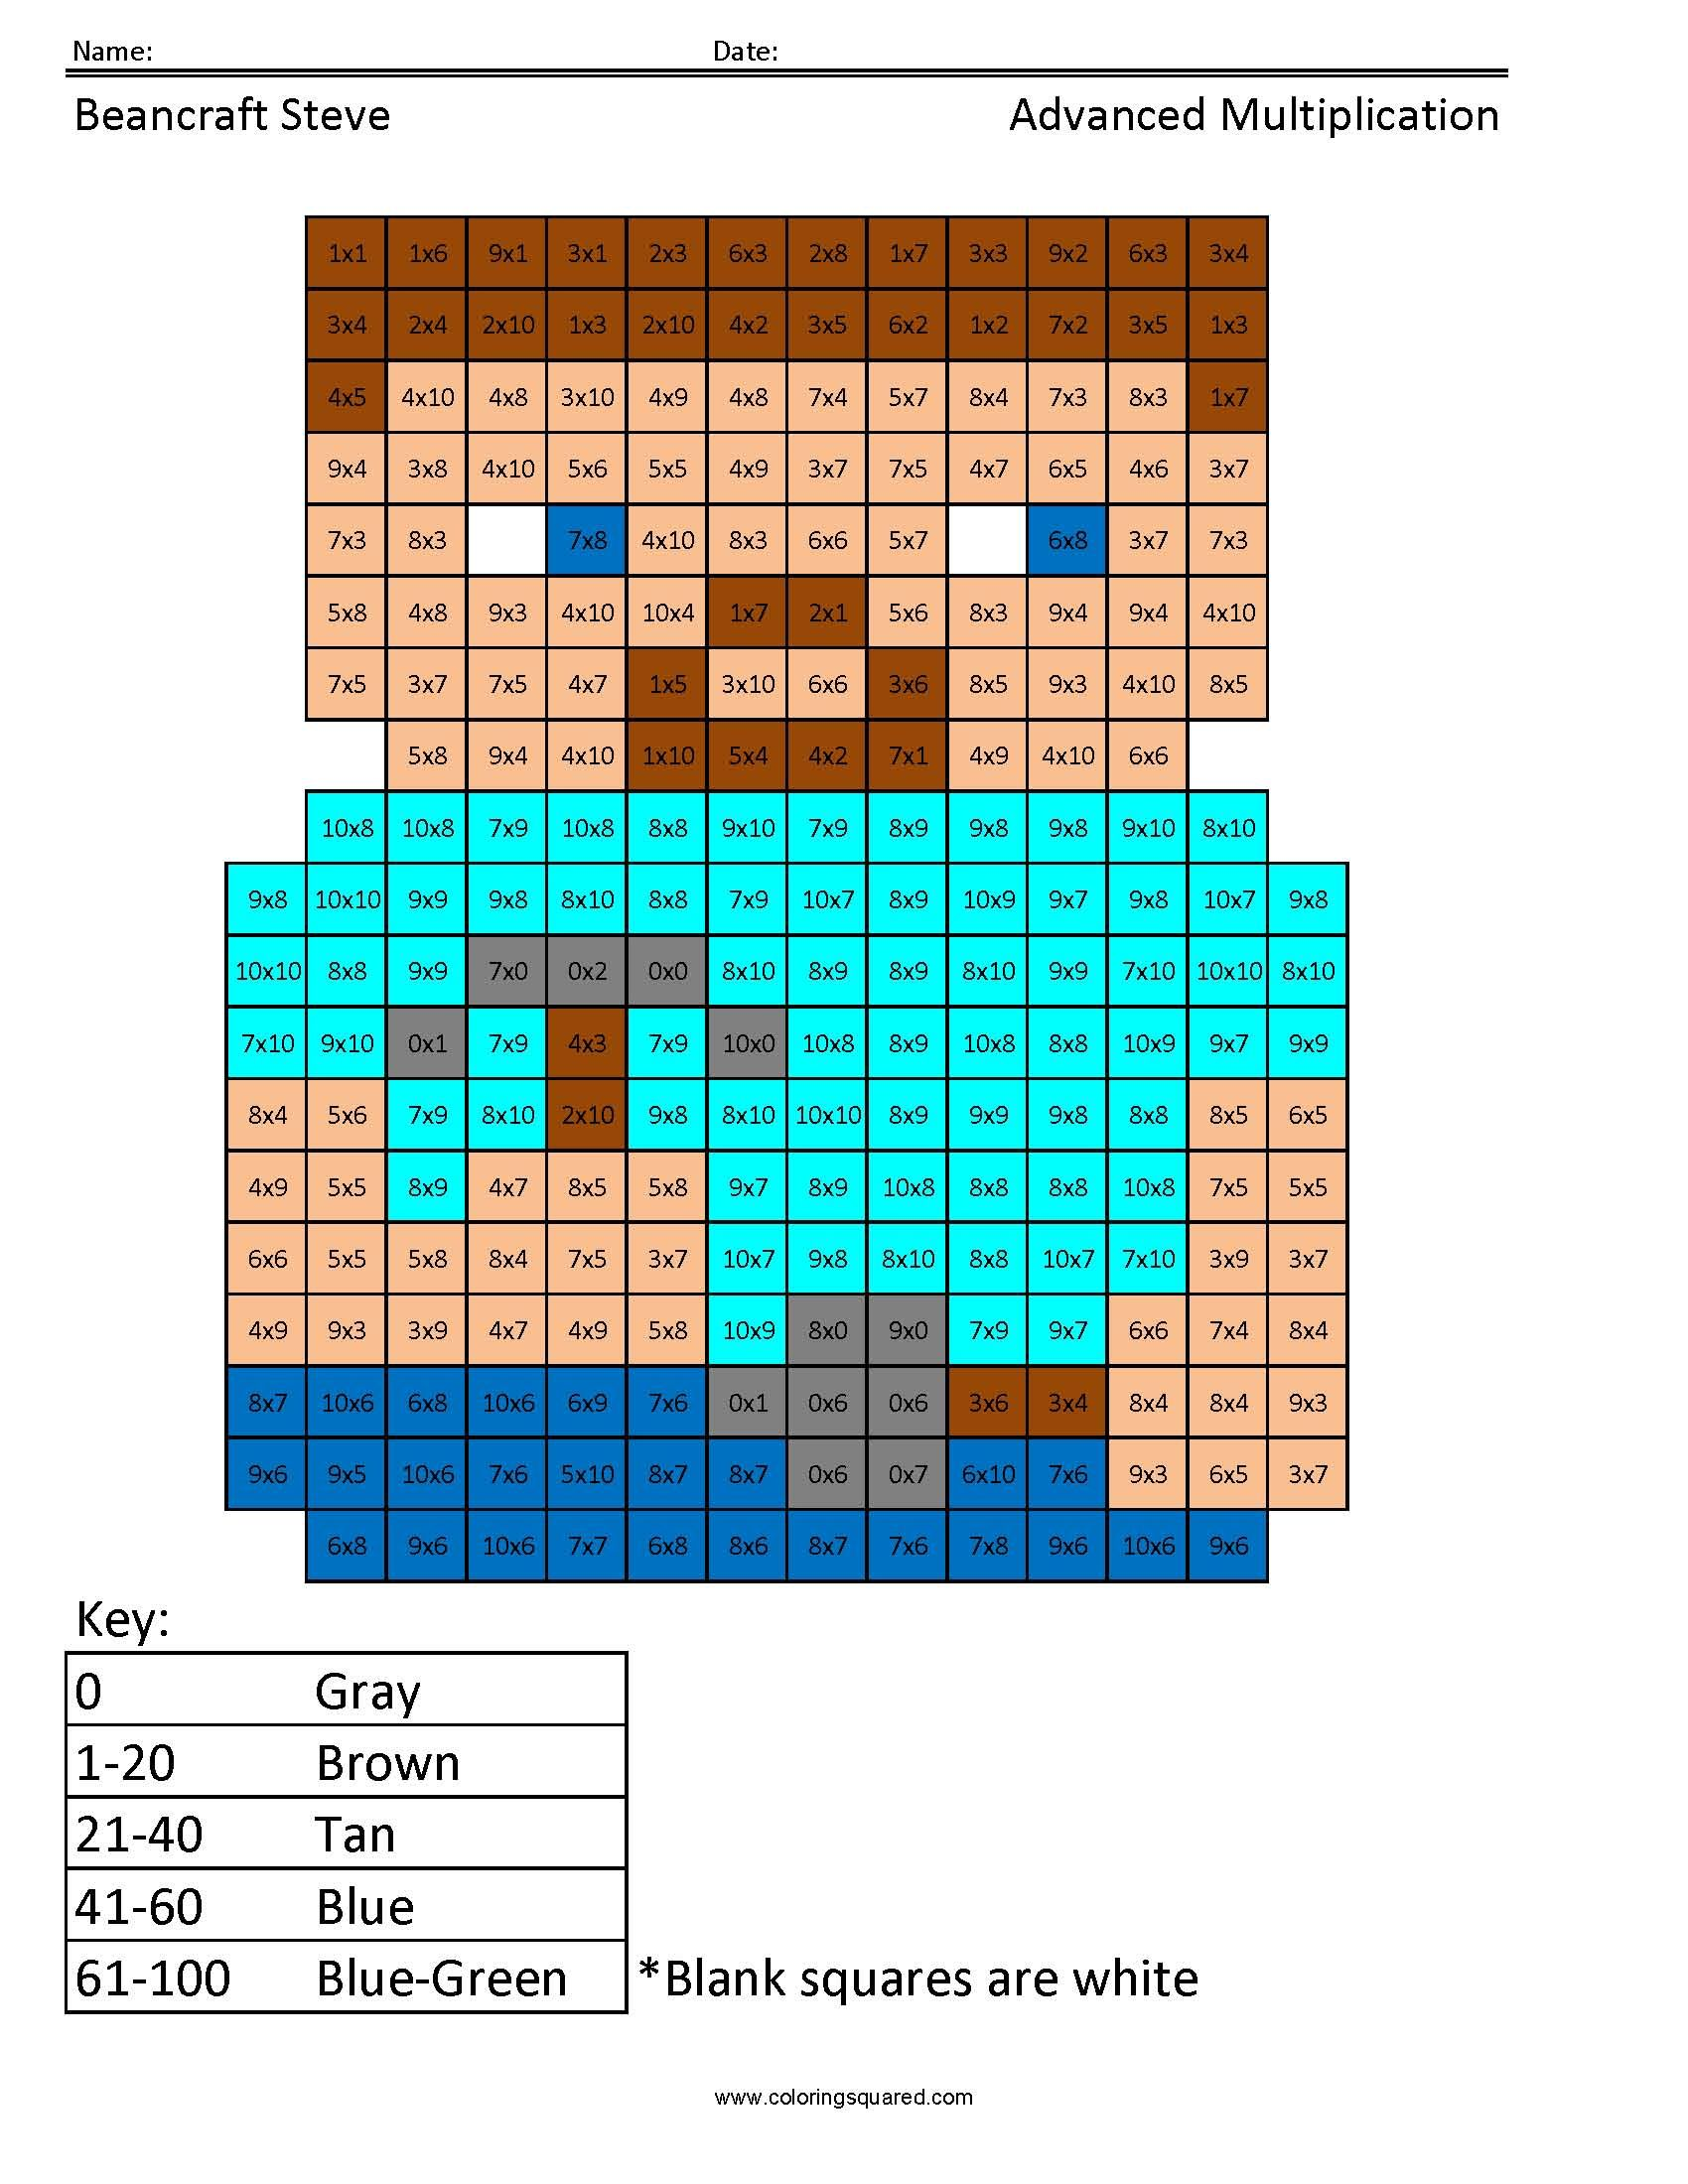 Beancraft Steve Advanced Multiplication Coloring Squared Multiplication Cool Pixel Art Math Facts [ 2200 x 1700 Pixel ]